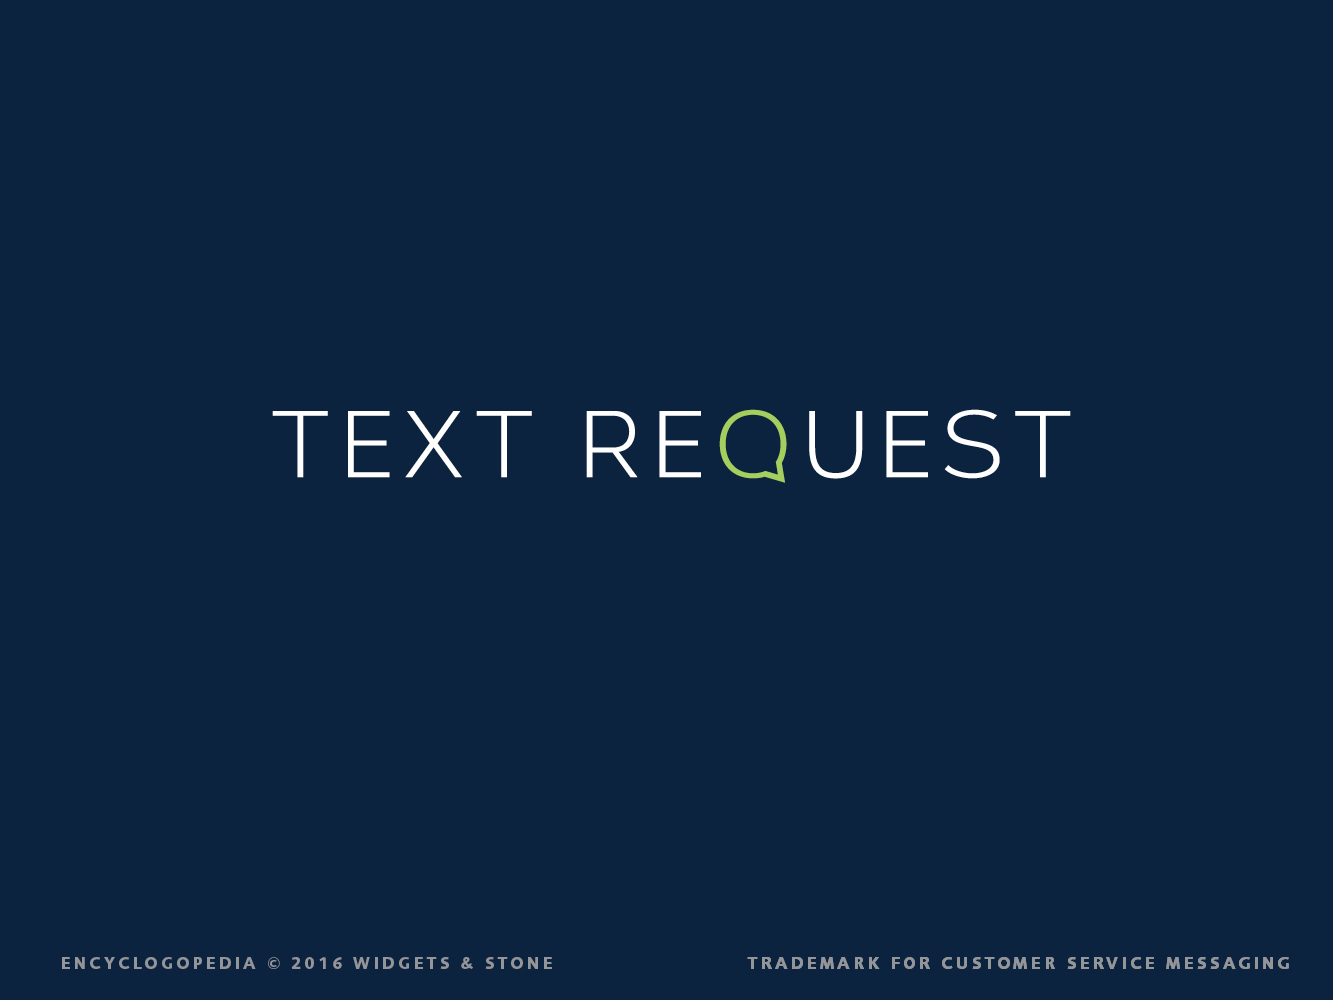 Copy of Text Request logotype design